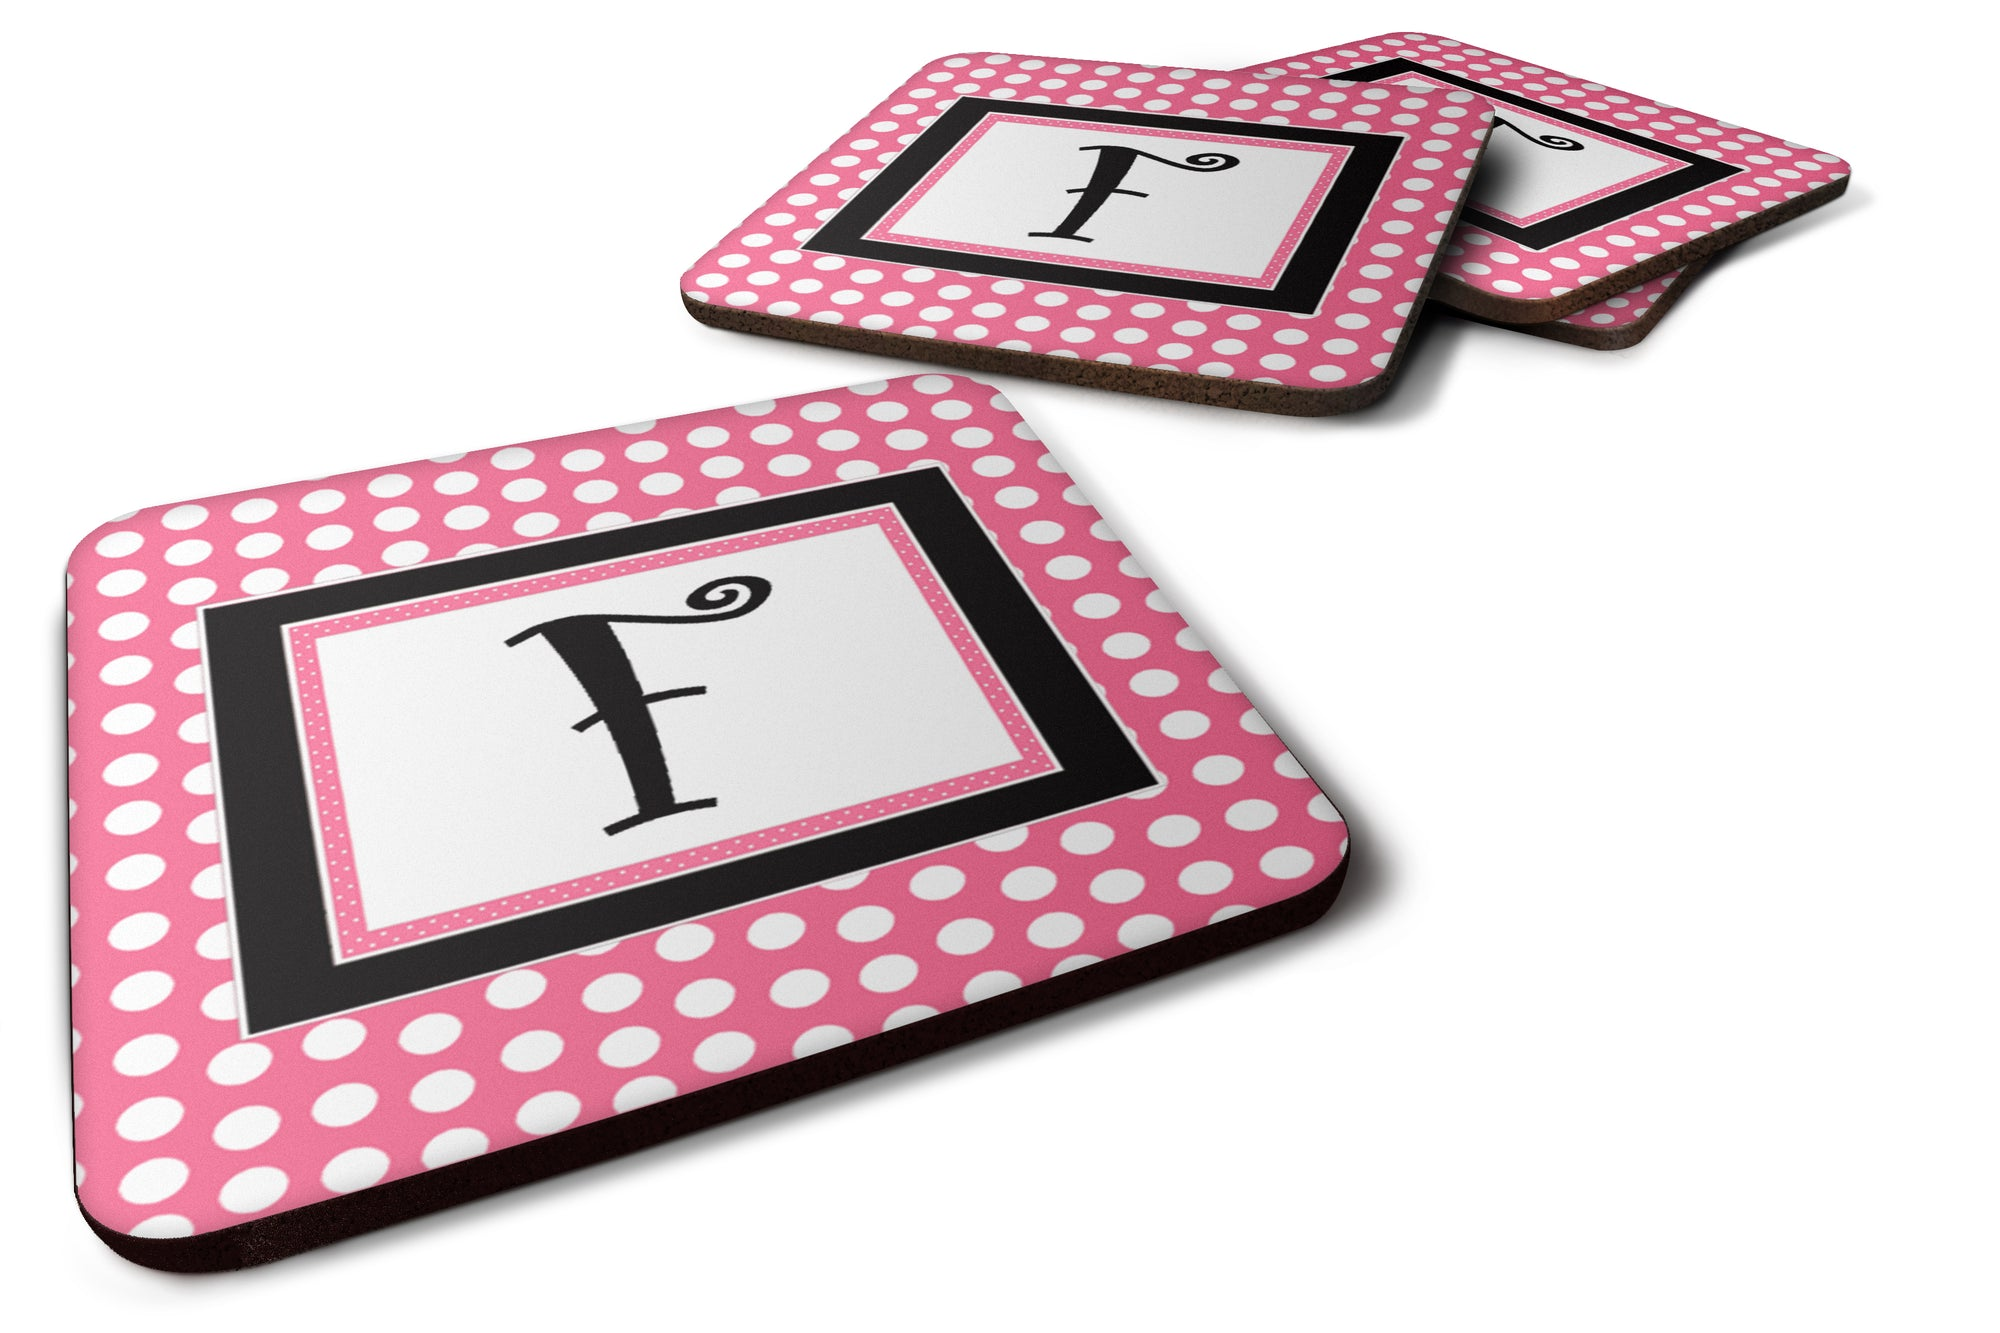 Set of 4 Monogram - Pink Black Polka Dots Foam Coasters Initial Letter F by Caroline's Treasures